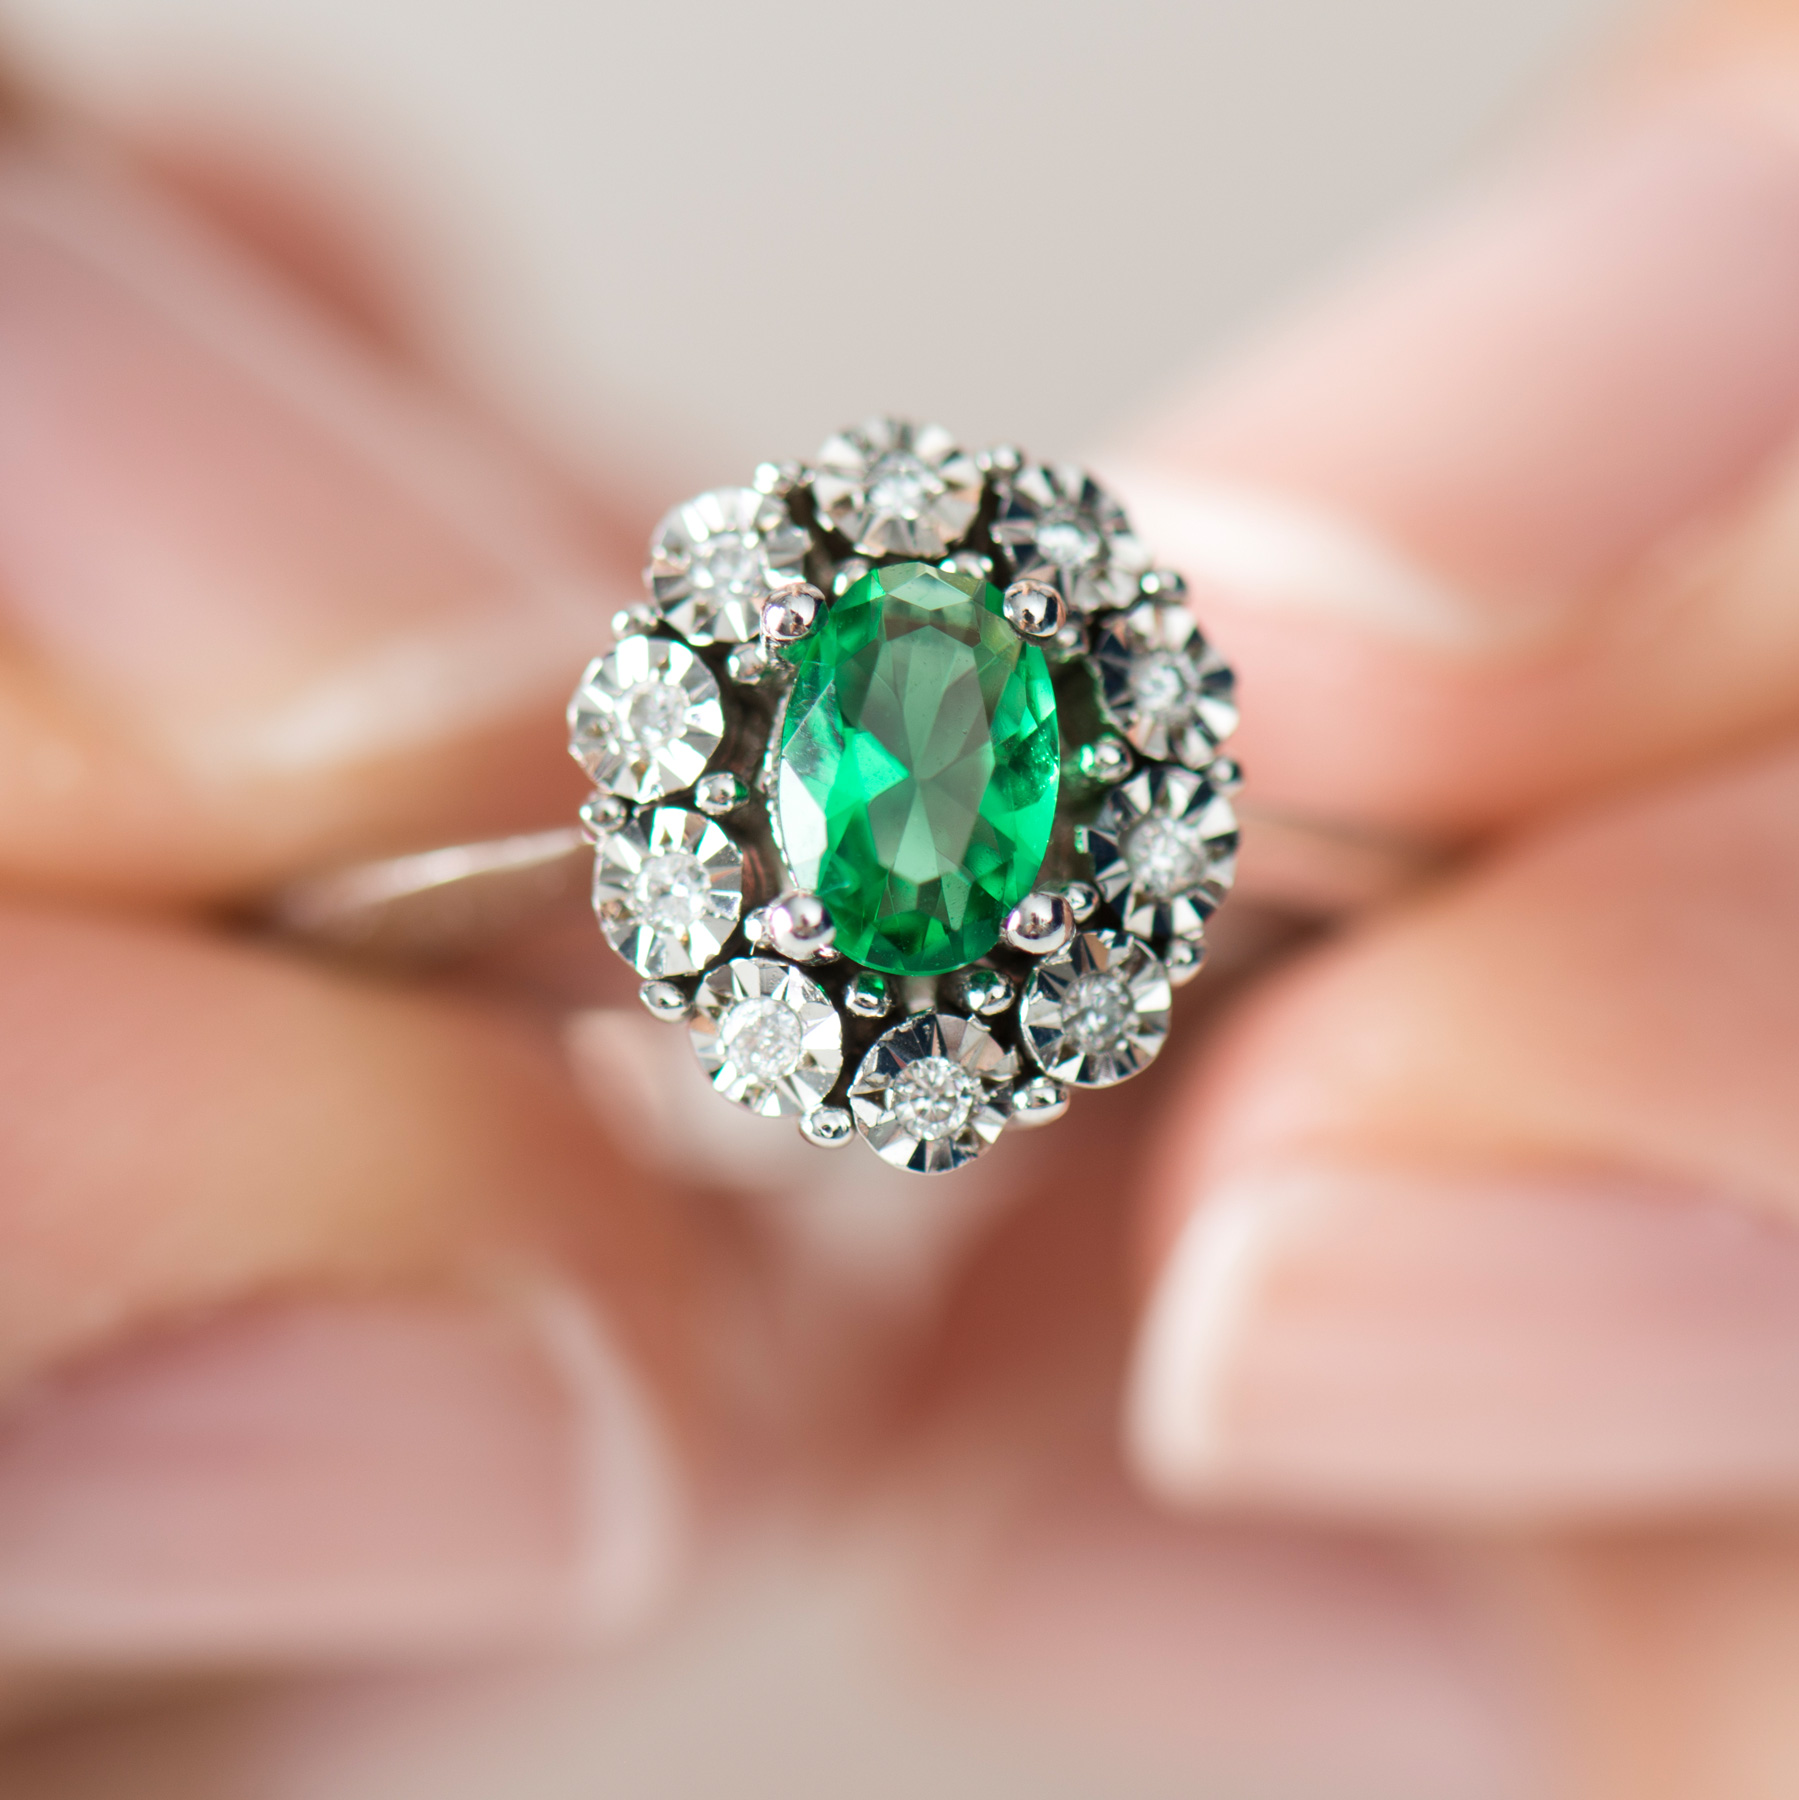 Engagement ring trends 2021: green emerald engagement ring